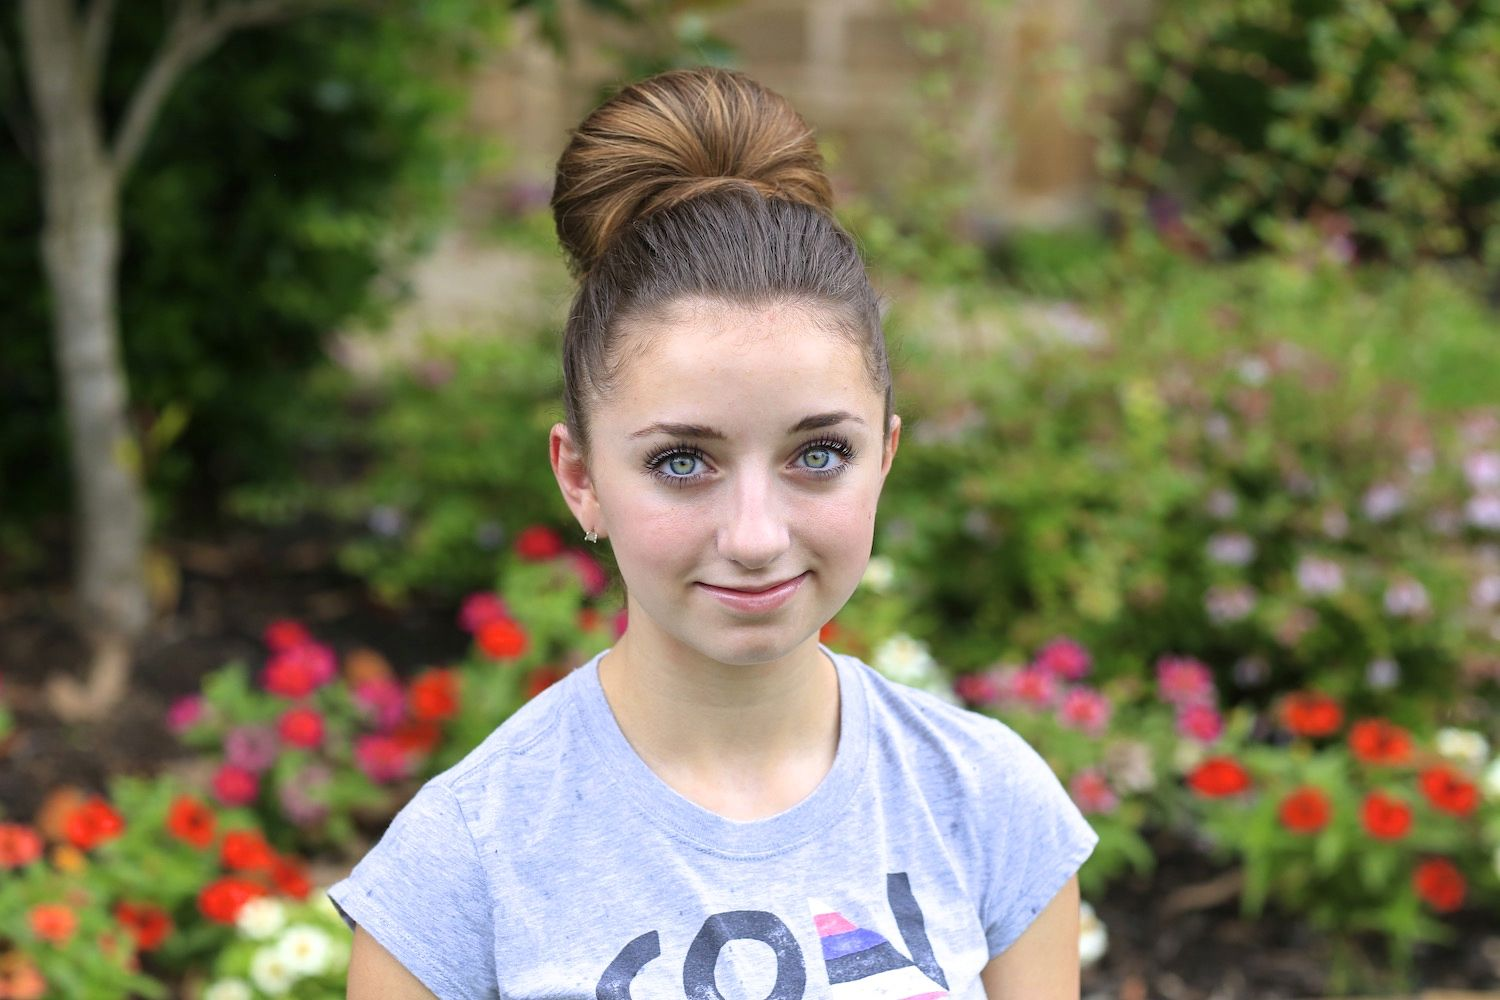 Cute easy hairstyles that kids can do - Love That You Can Wear This Hairstyle To The Gym Or Work